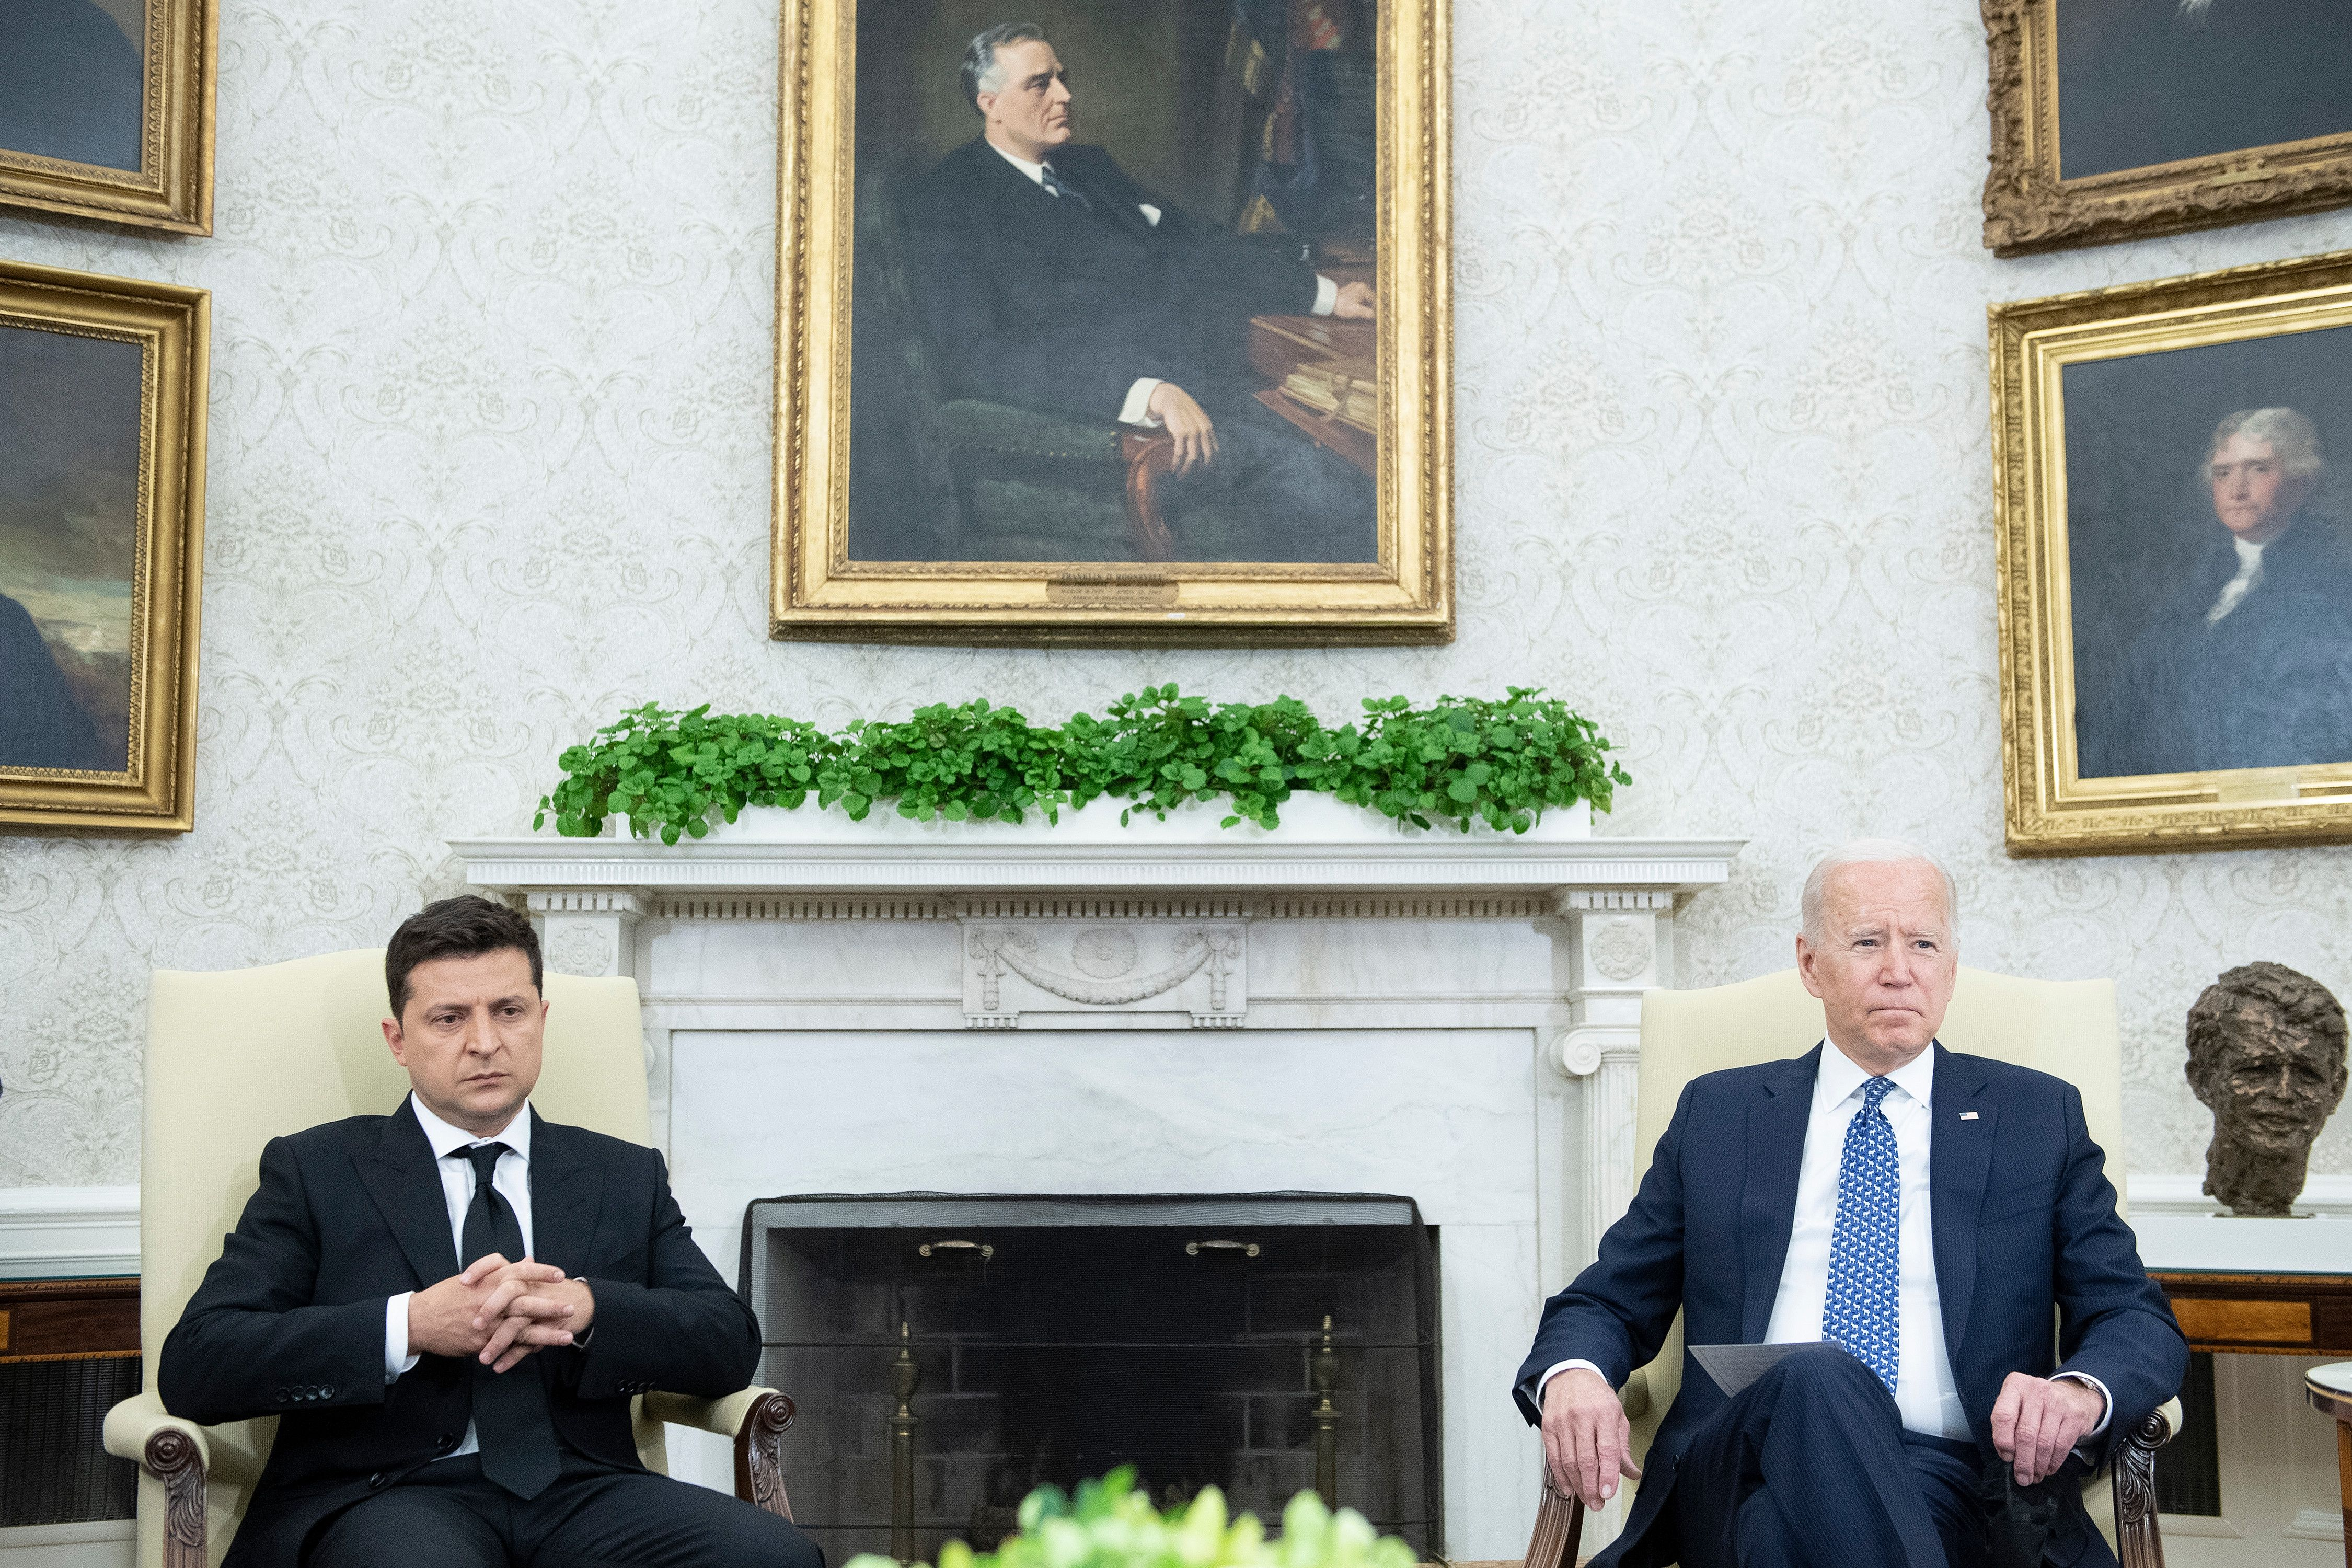 Joe Biden and Ukraine's President Volodymyr Zelensky before a meeting in the Oval Office of the White House in Washington, D.C. (Photo by BRENDAN SMIALOWSKI/AFP via Getty Images)